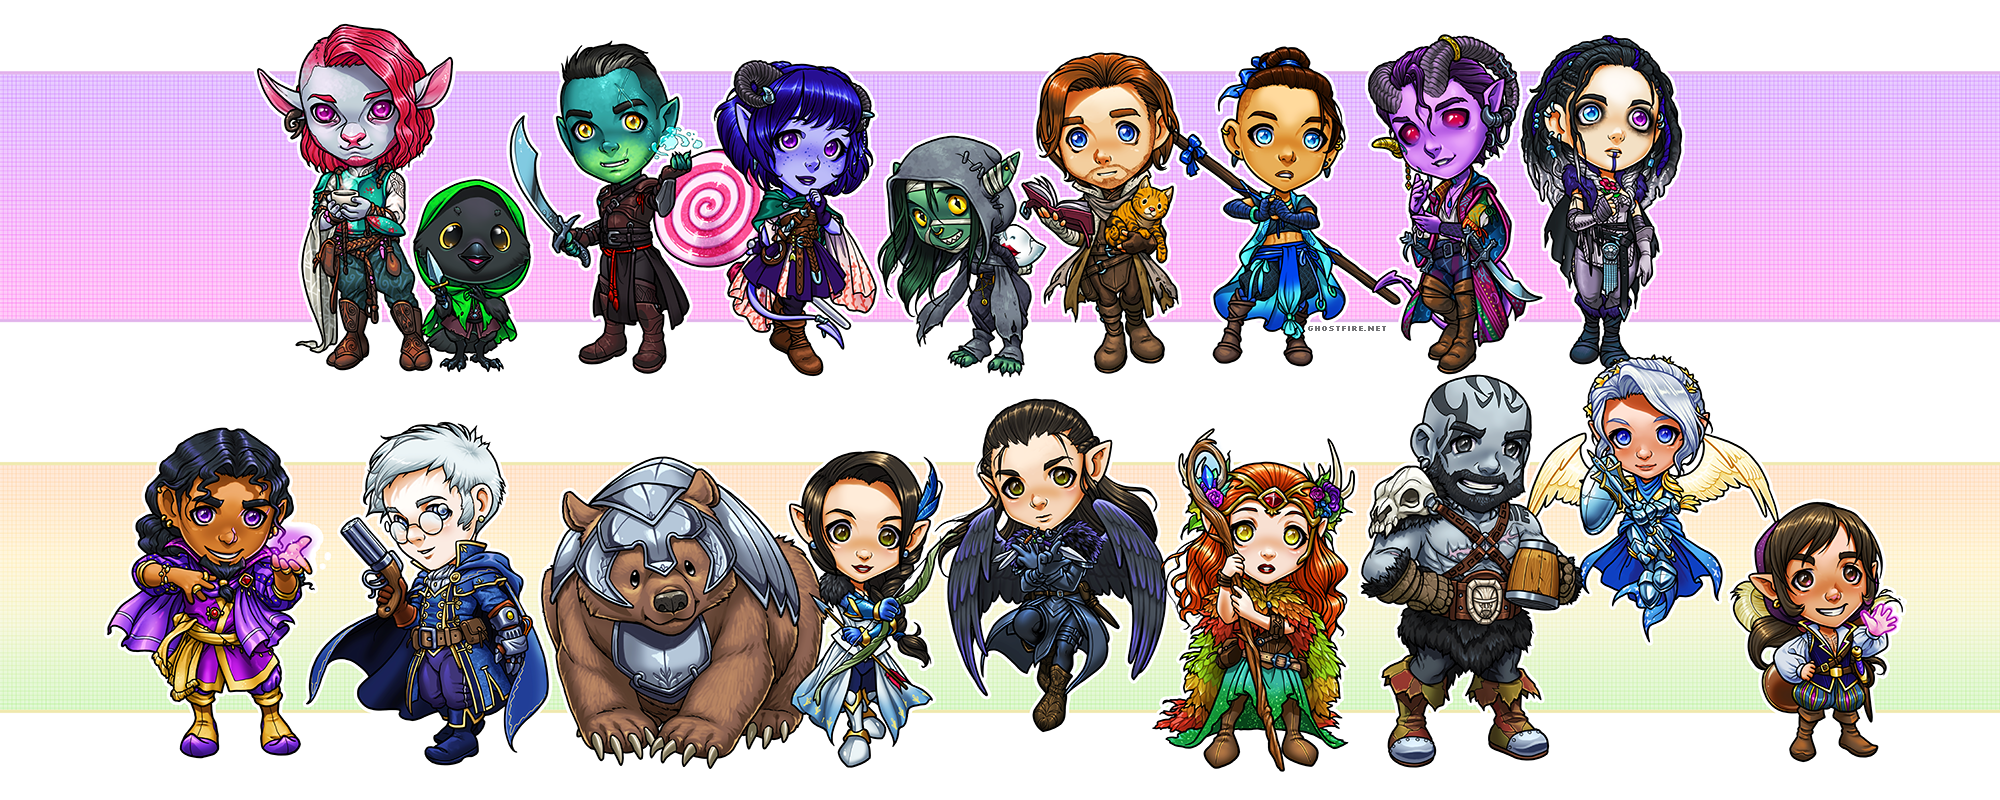 Searching For Trinket ~critical role art index~ show doodles (doodles done during live shows, from my twitter) • vox machina campaign: searching for trinket